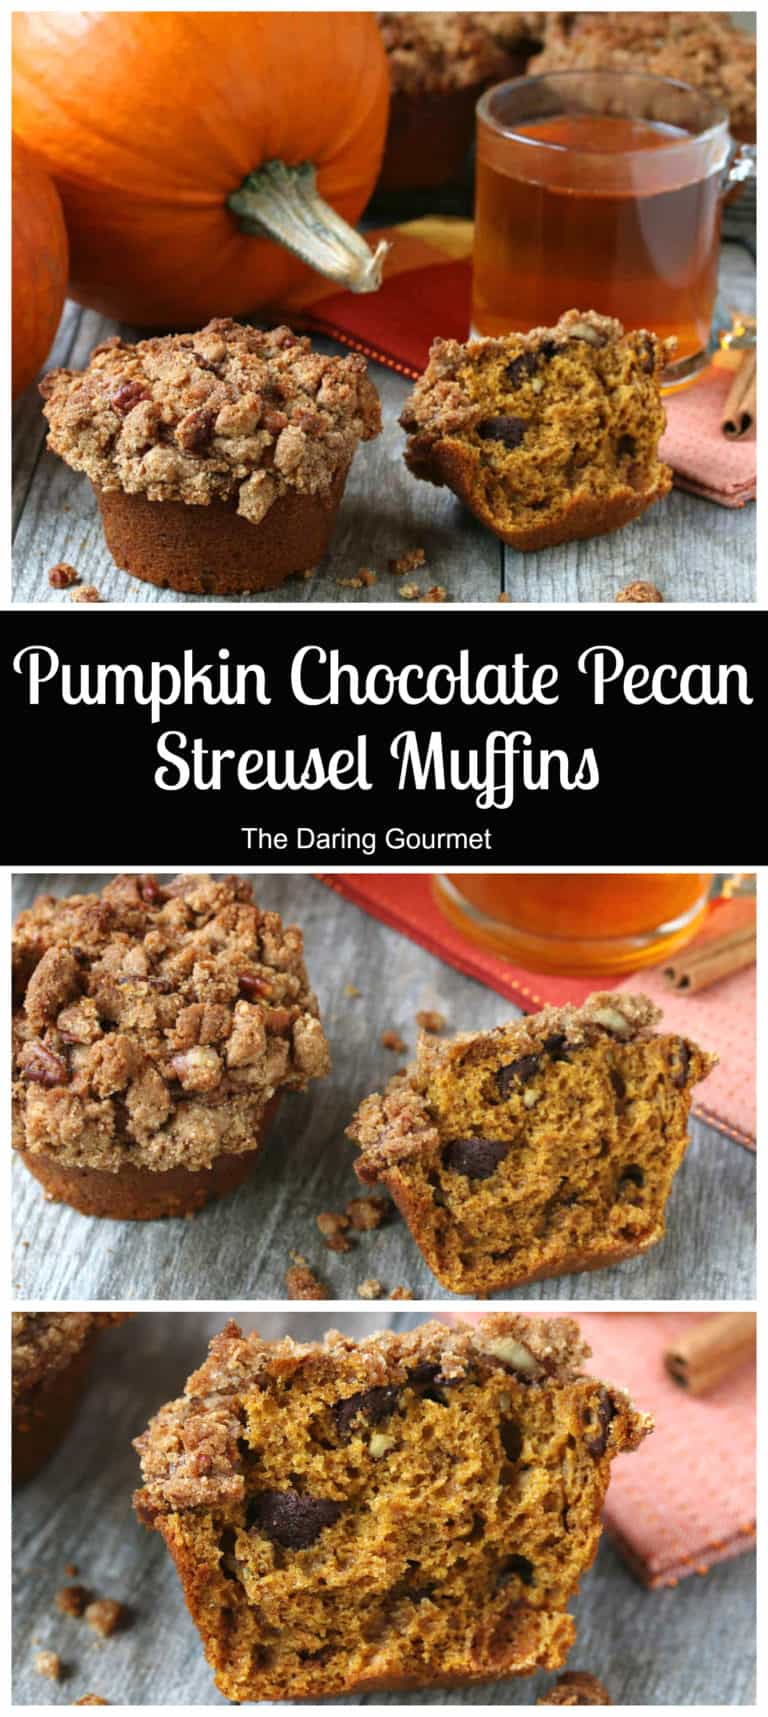 pumpkin streusel muffins recipe whole wheat grain chocolate pecan